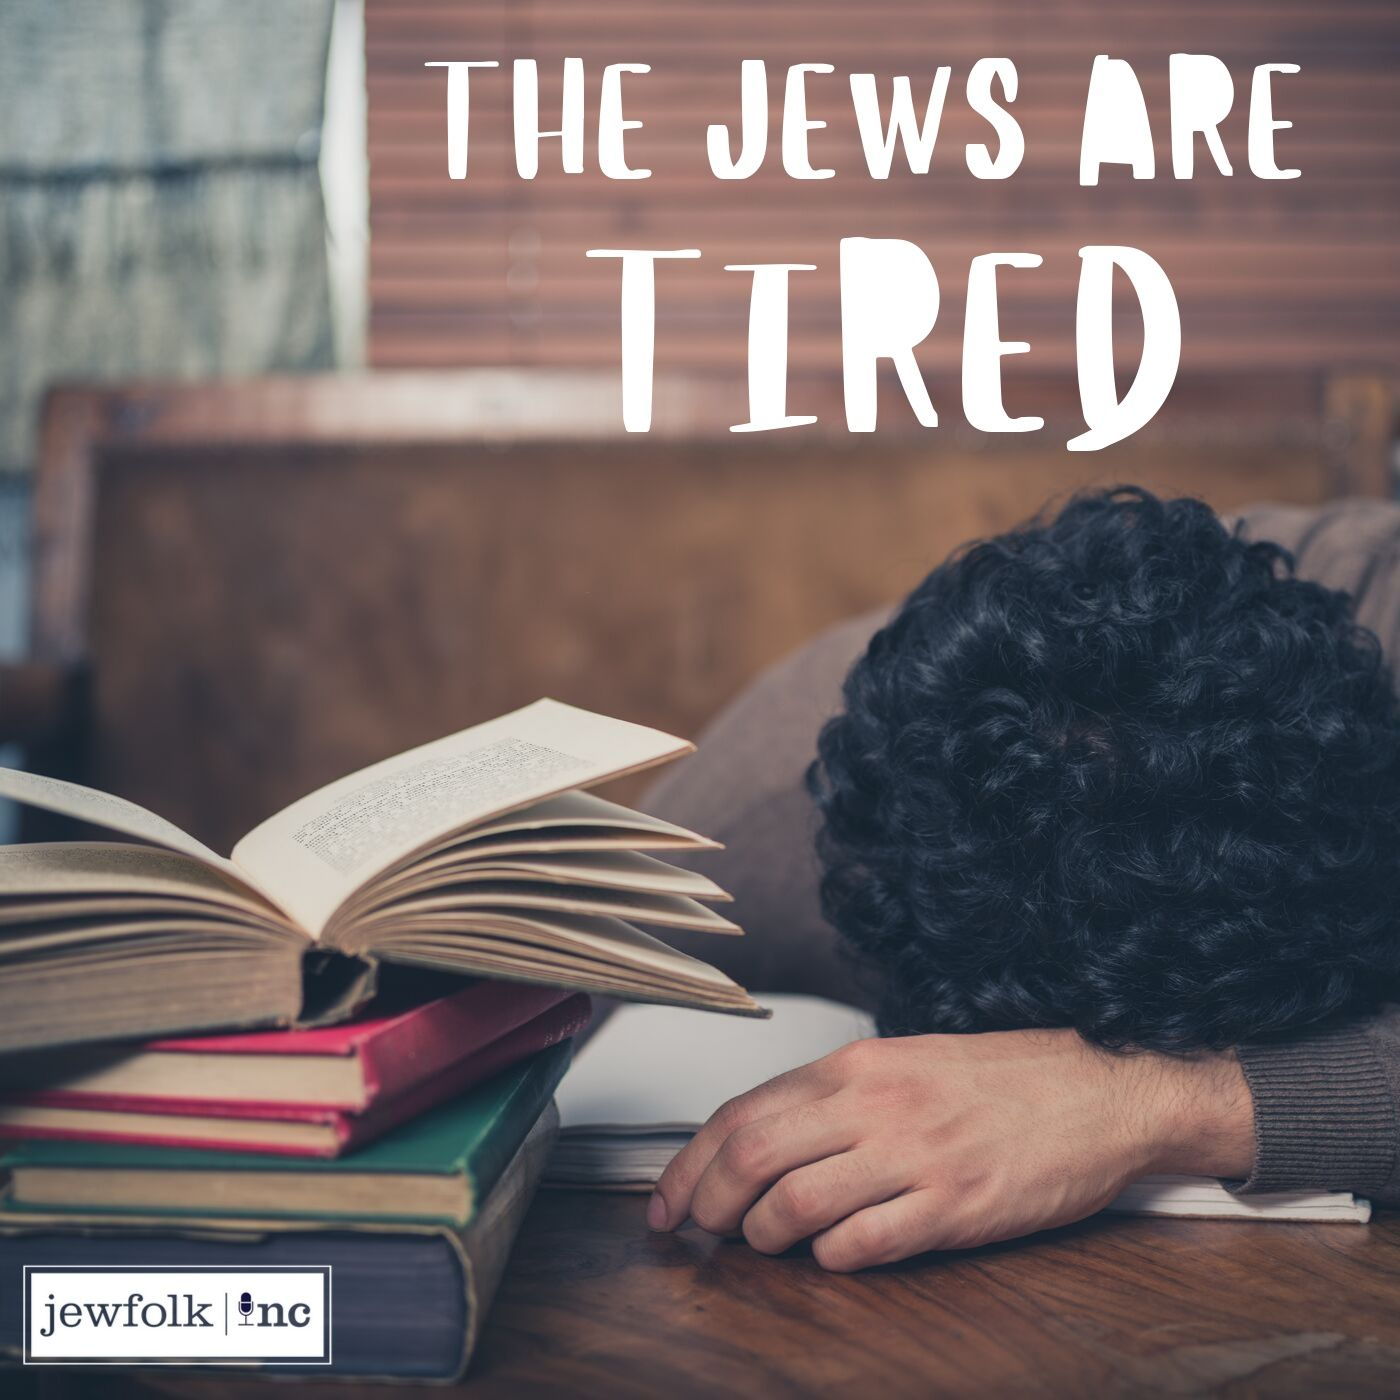 The Jews Are Tired